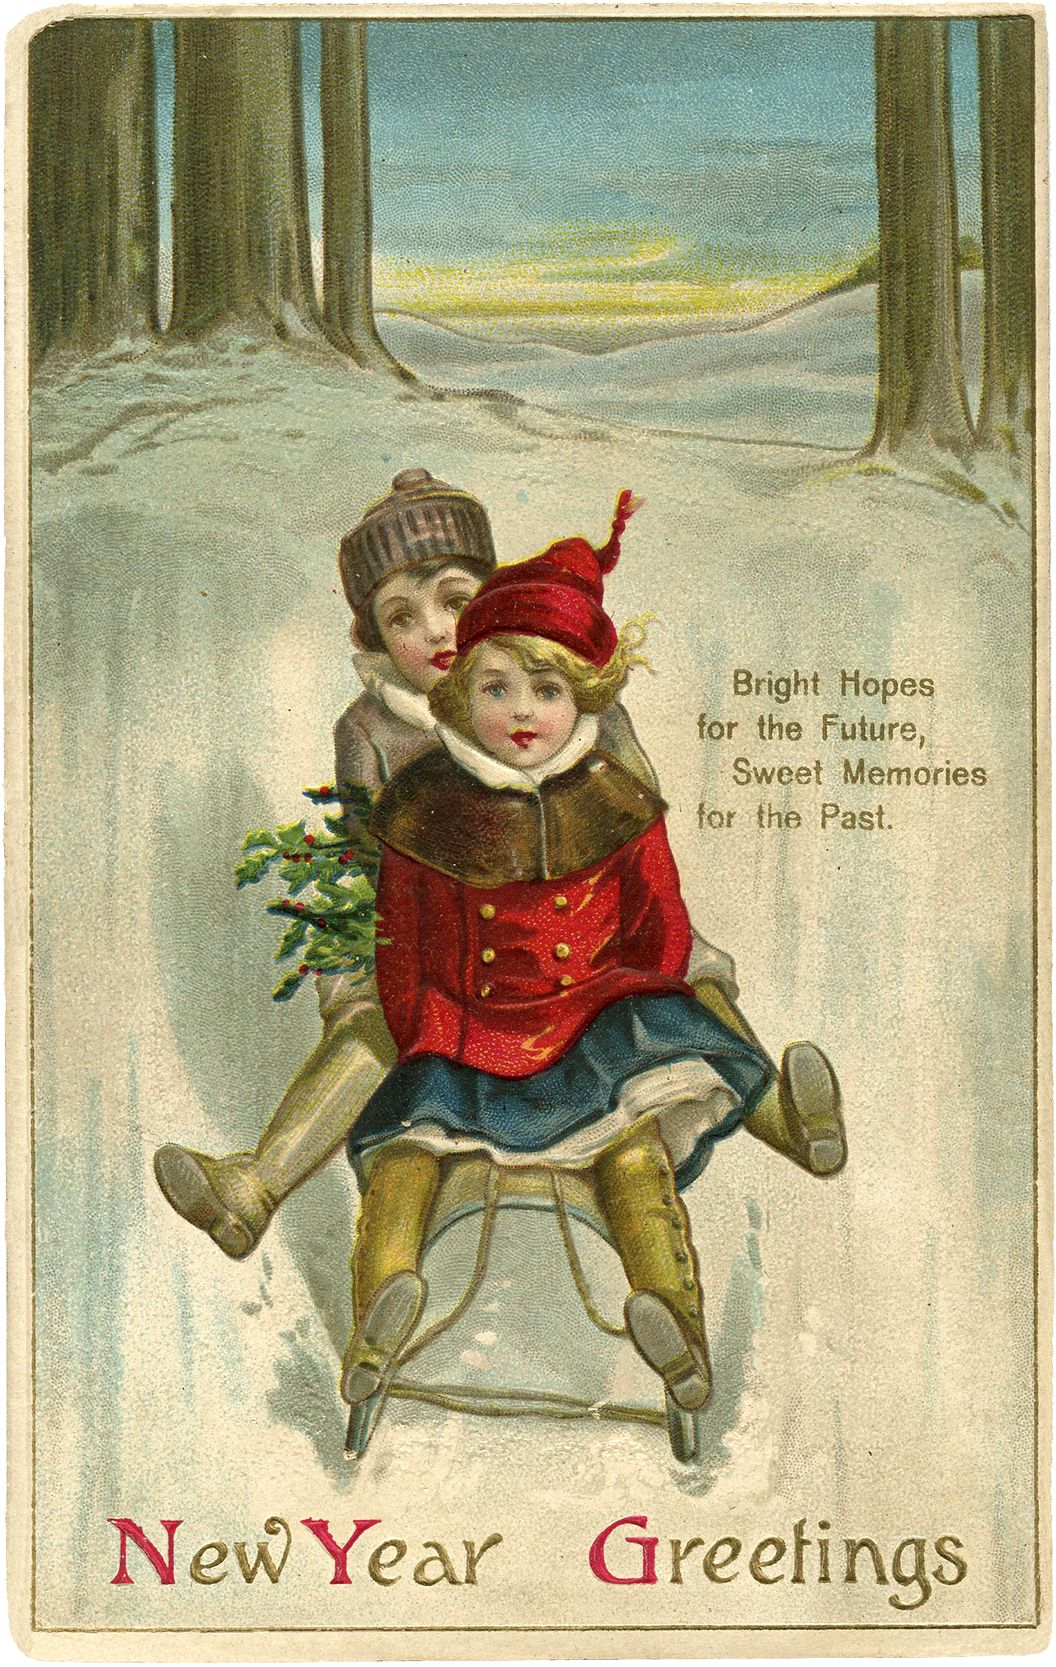 Vintage New Year Sled Image Cute Messages, Graphics